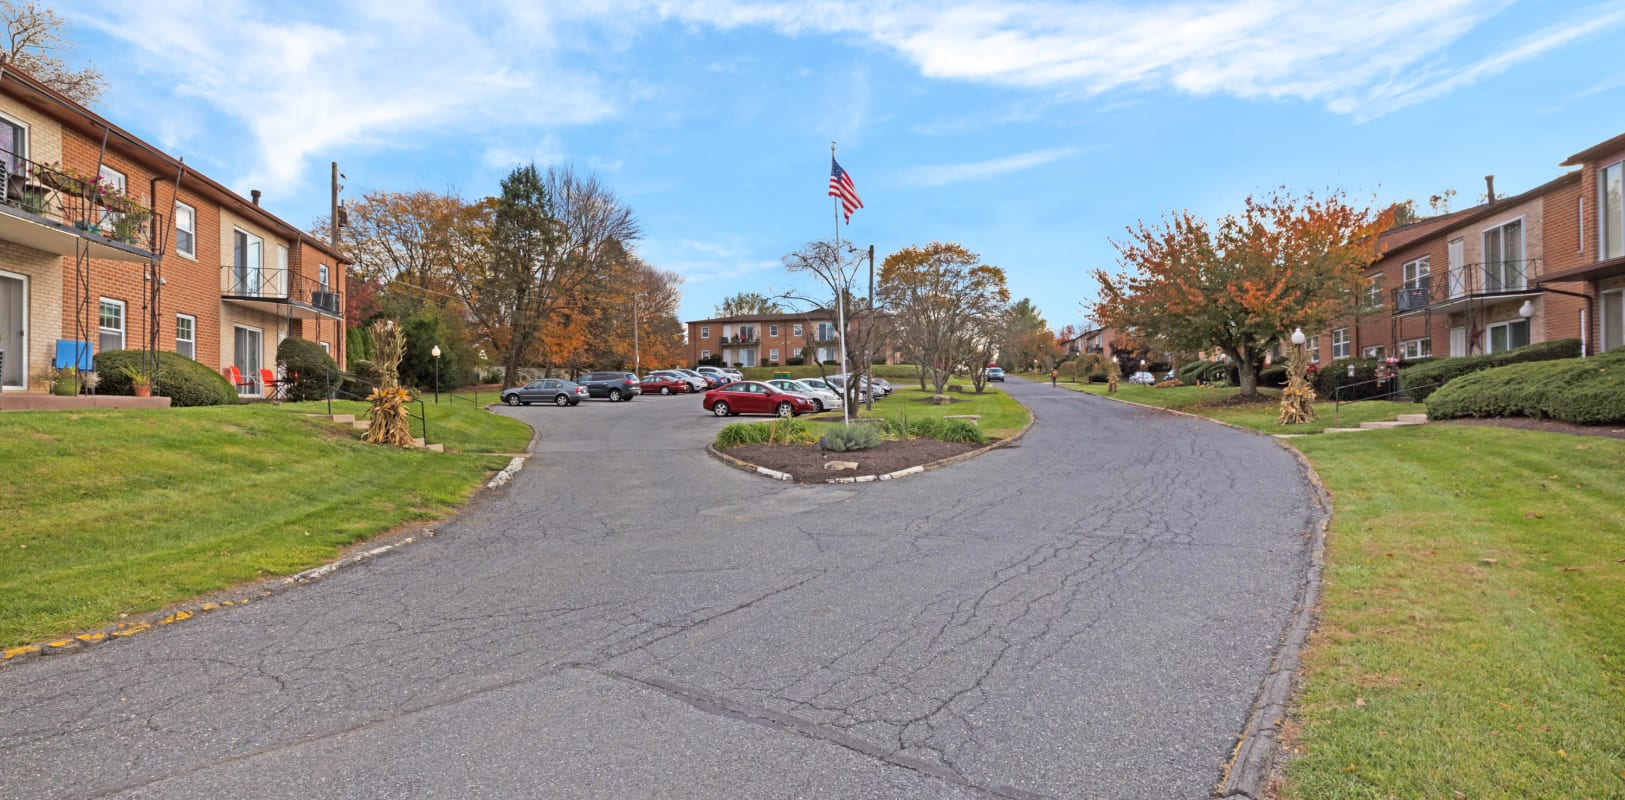 Parking lot and flag pole at Northfield Apartments in Bethlehem, Pennsylvania